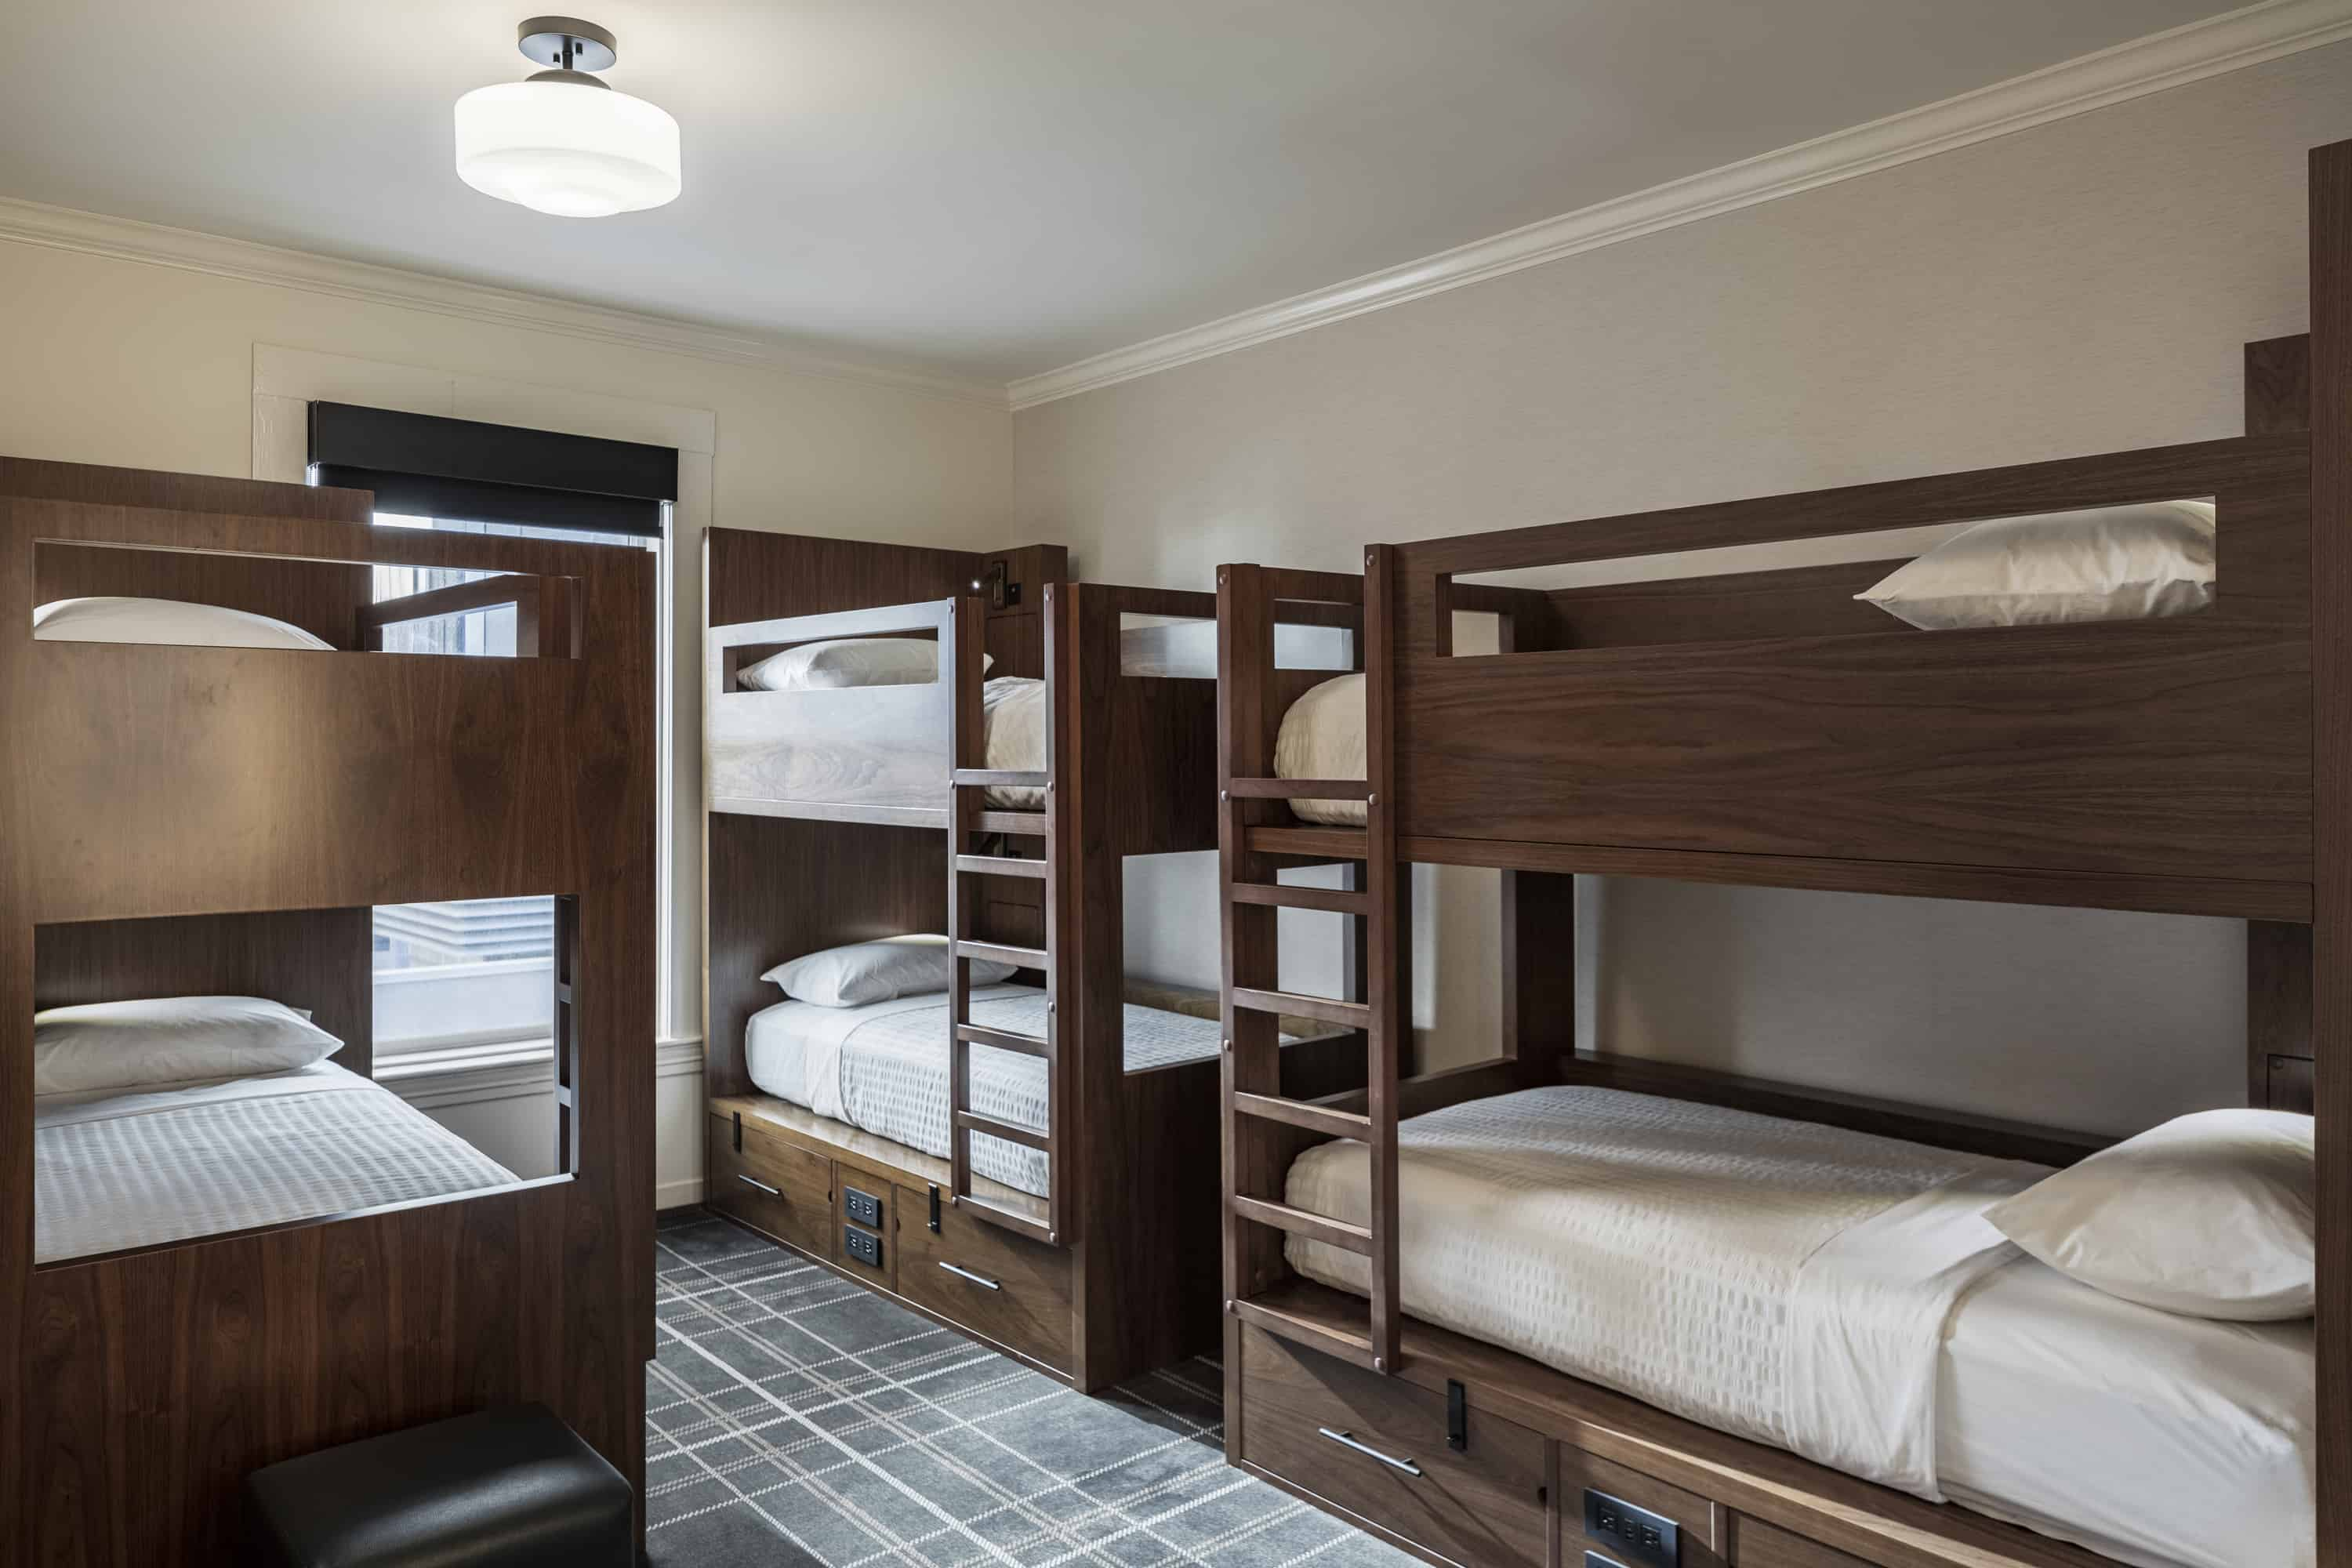 FOUND Hotel San Francisco - Room - Bed in 6 Bed Mixed Dorm Room